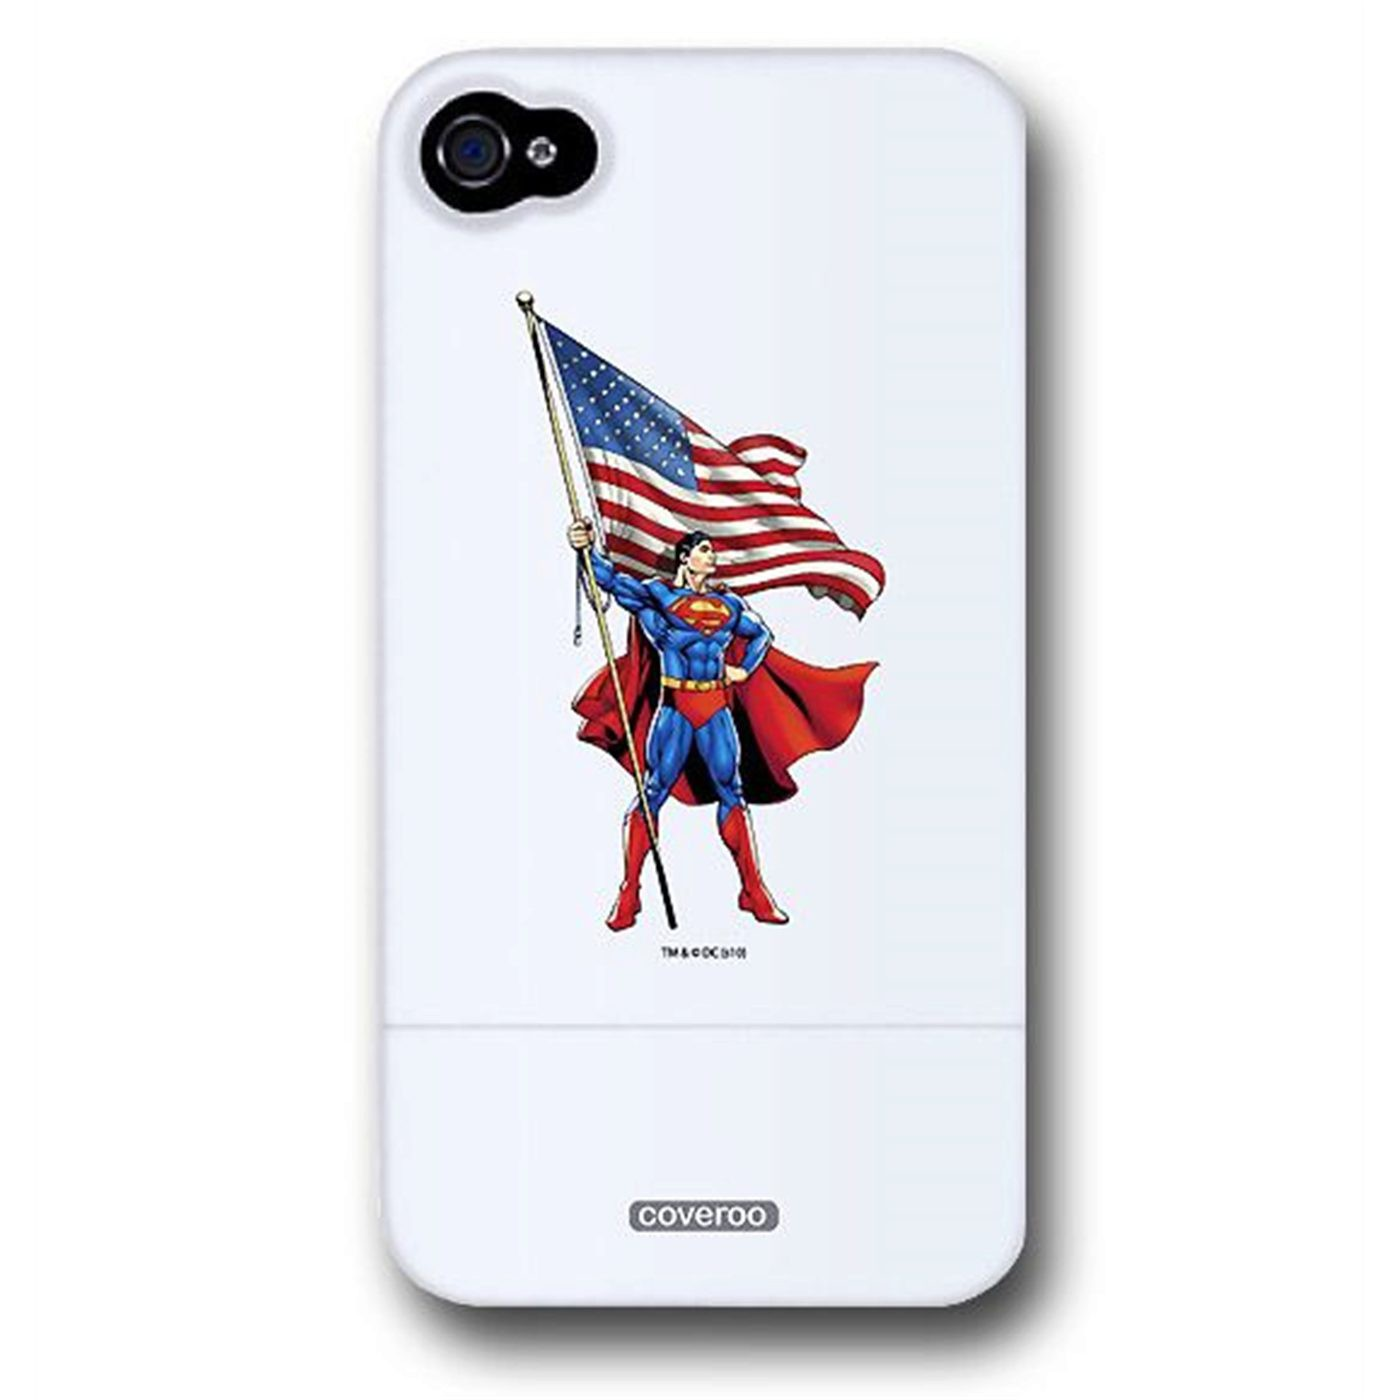 Superman American Way iPhone 4 Slider Case